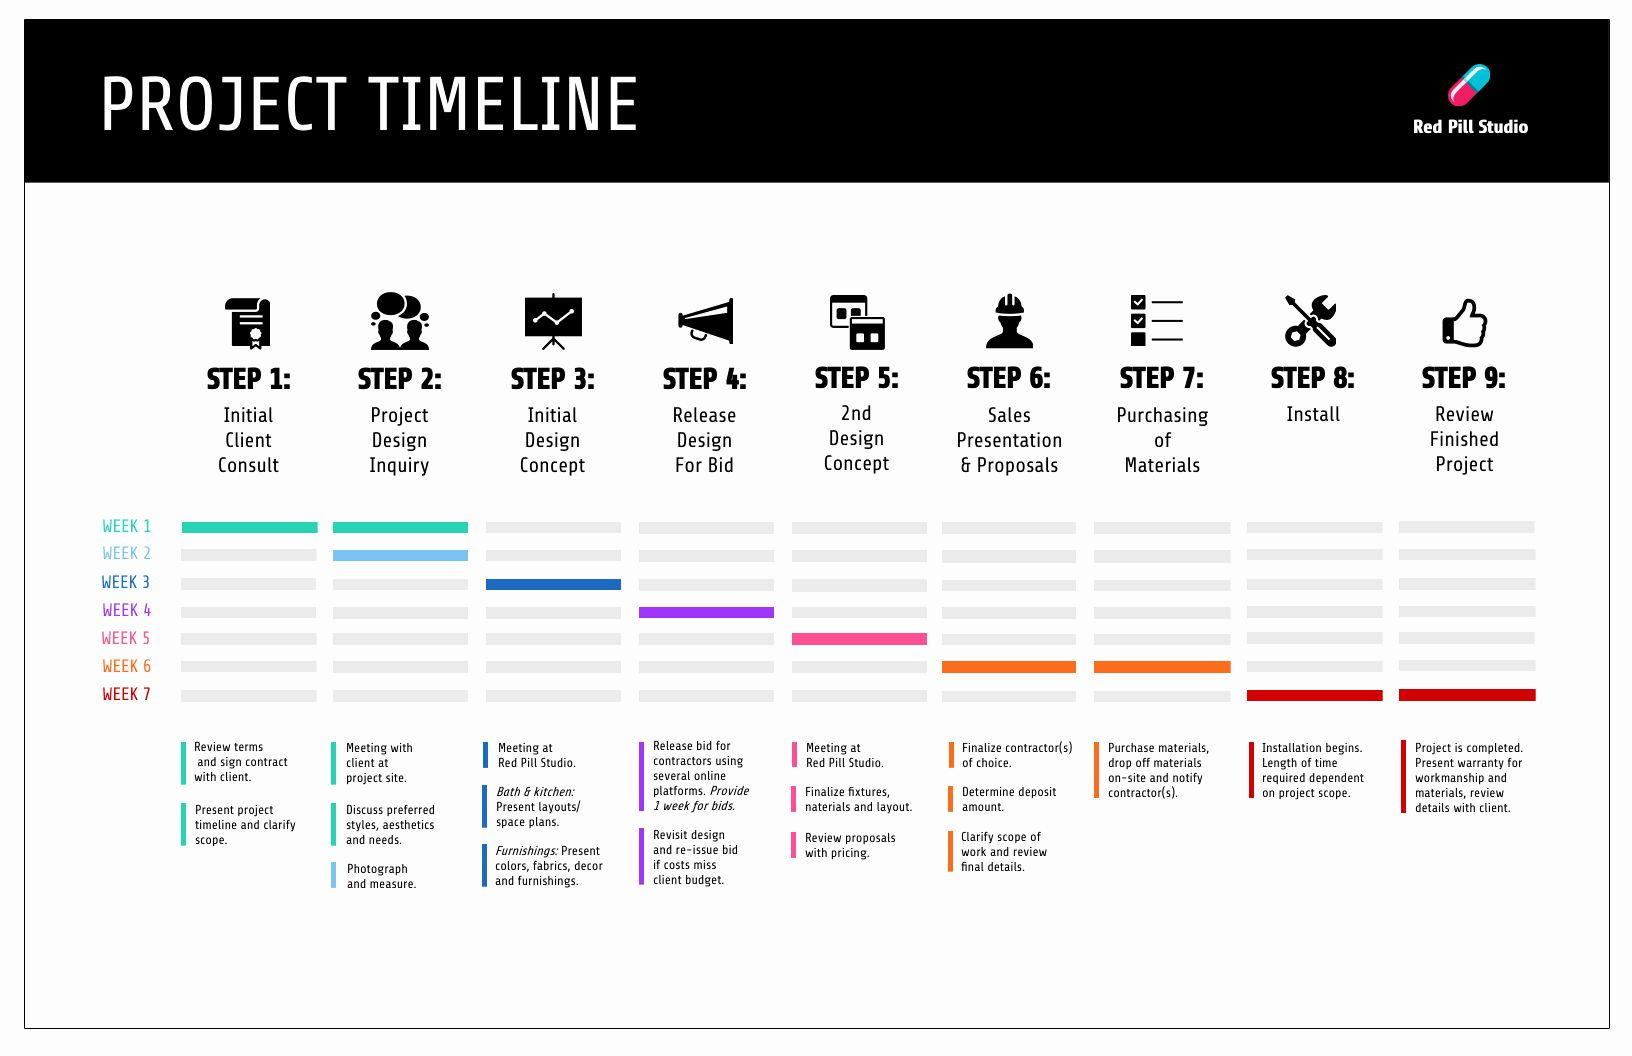 Project Plan Template Microsoft Word Beautiful 15 Project Plan Templates To Visualize Your Strategy Project Planning Template Software Projects Templates Microsoft word project plan template